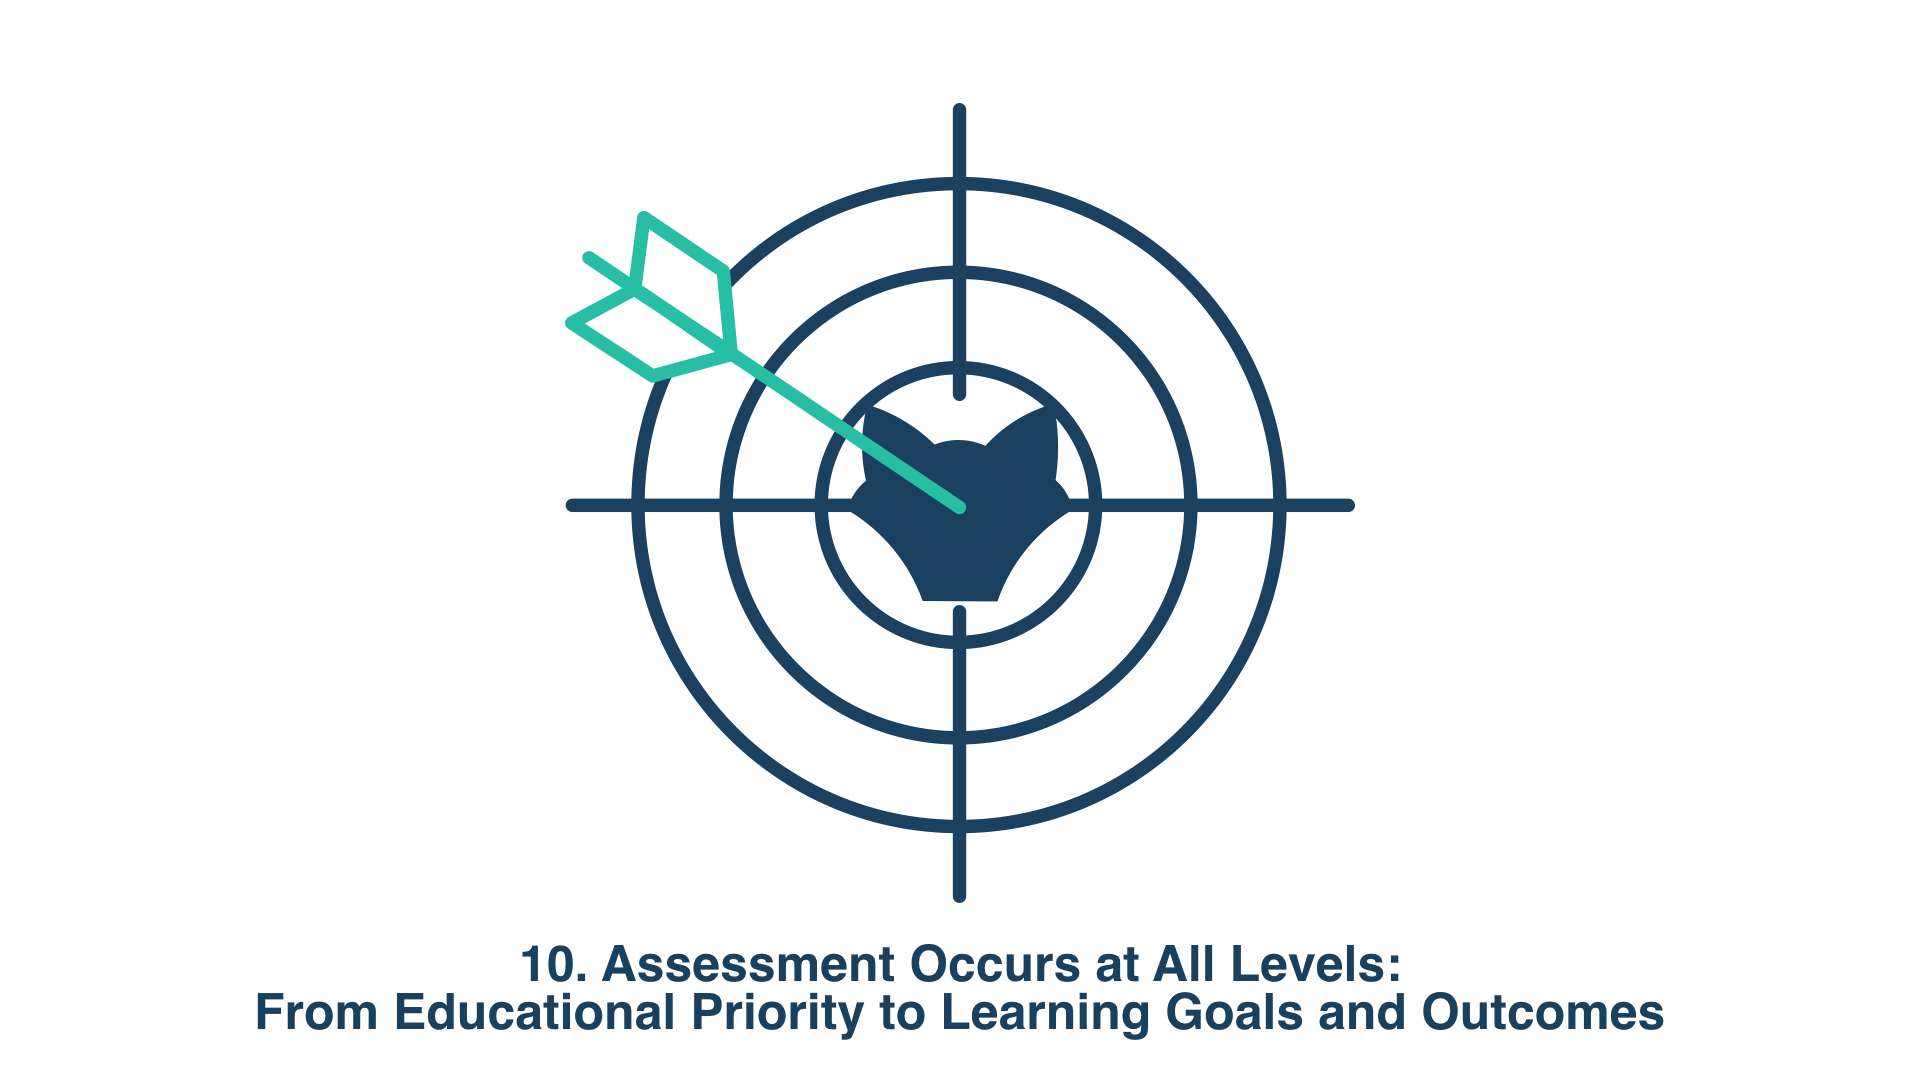 10. Assessment Occurs at All Levels: From Educational Priority to Learning Goals and Outcomes